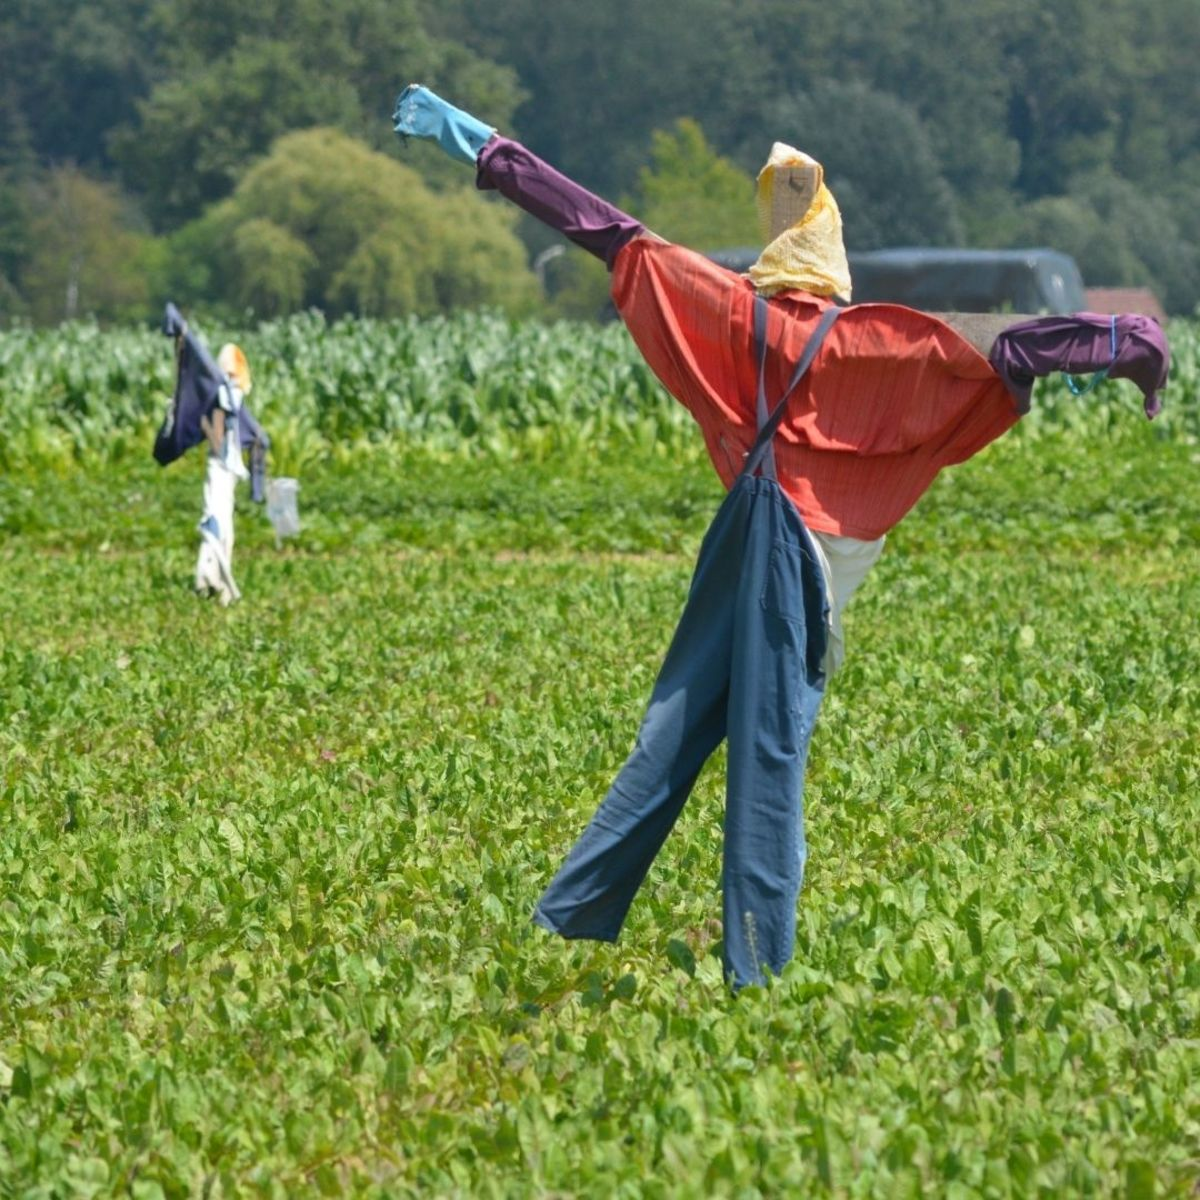 The scarecrow used by the farmer to trick Sang Kancil